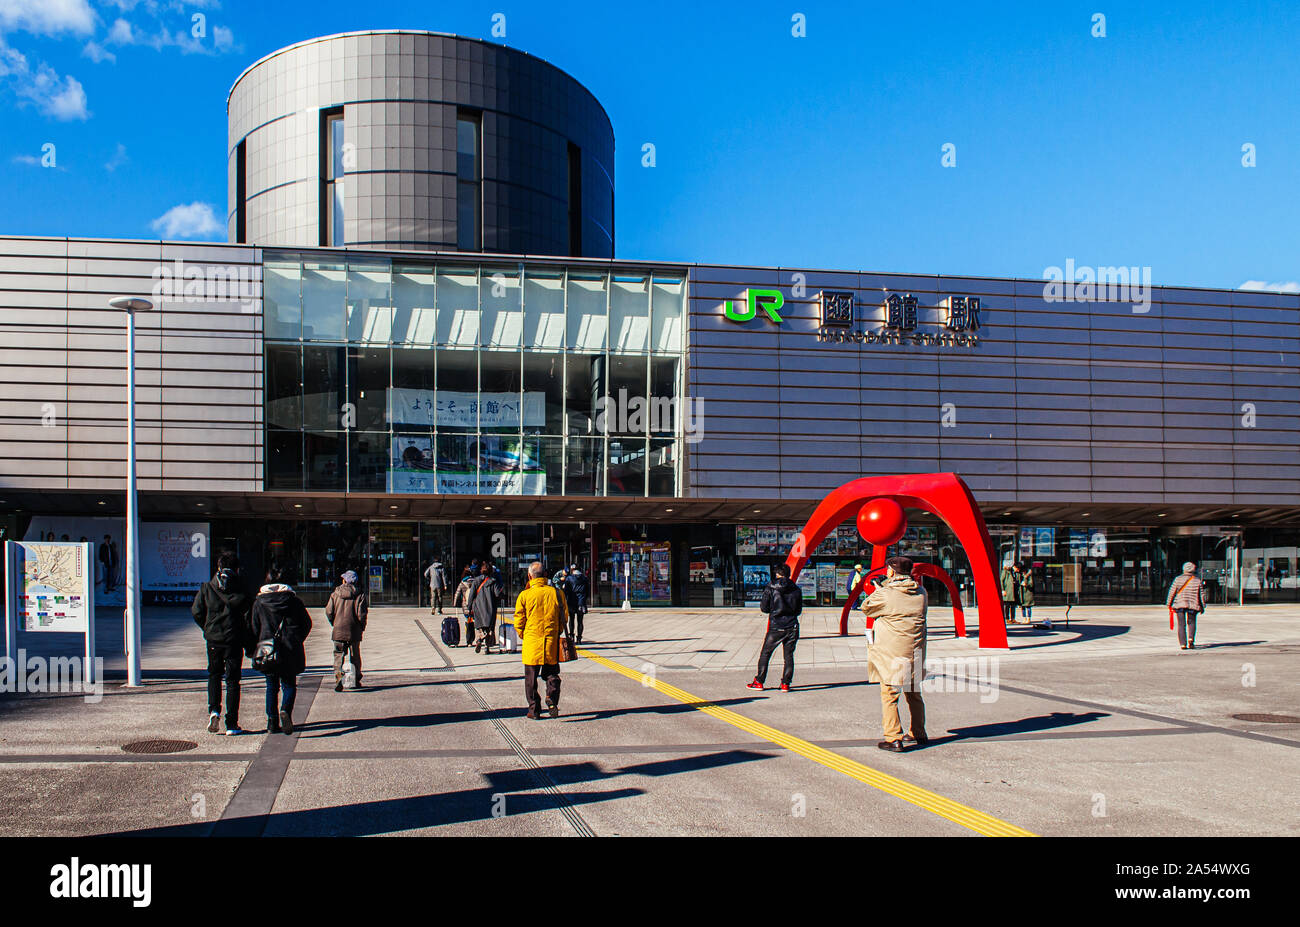 DEC 2, 2018 Hakodate, JAPAN - JR JR Hakodate Station building with tourists at front square under bright sunlight in winter Stock Photo